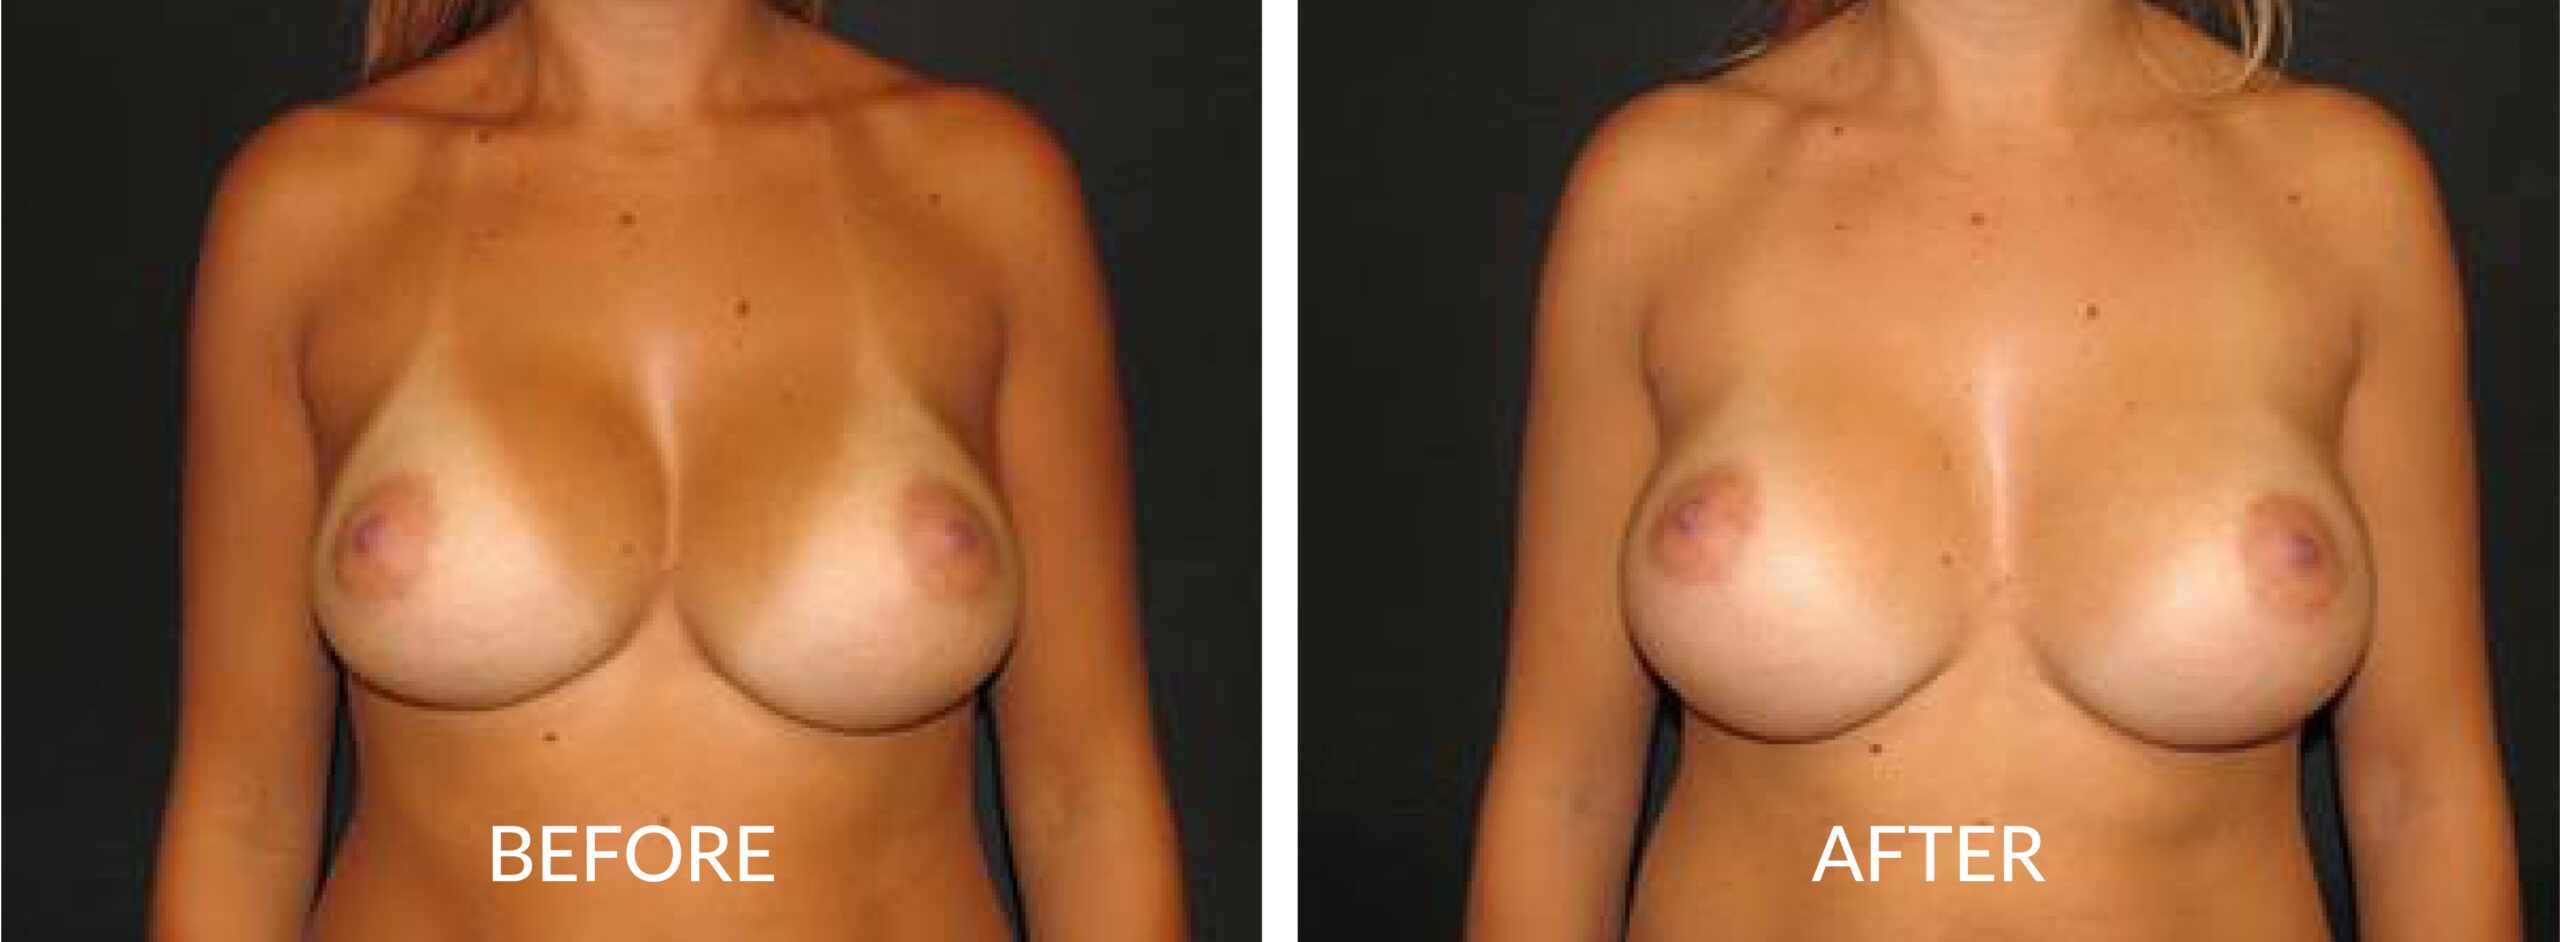 Before & After Breast Revision